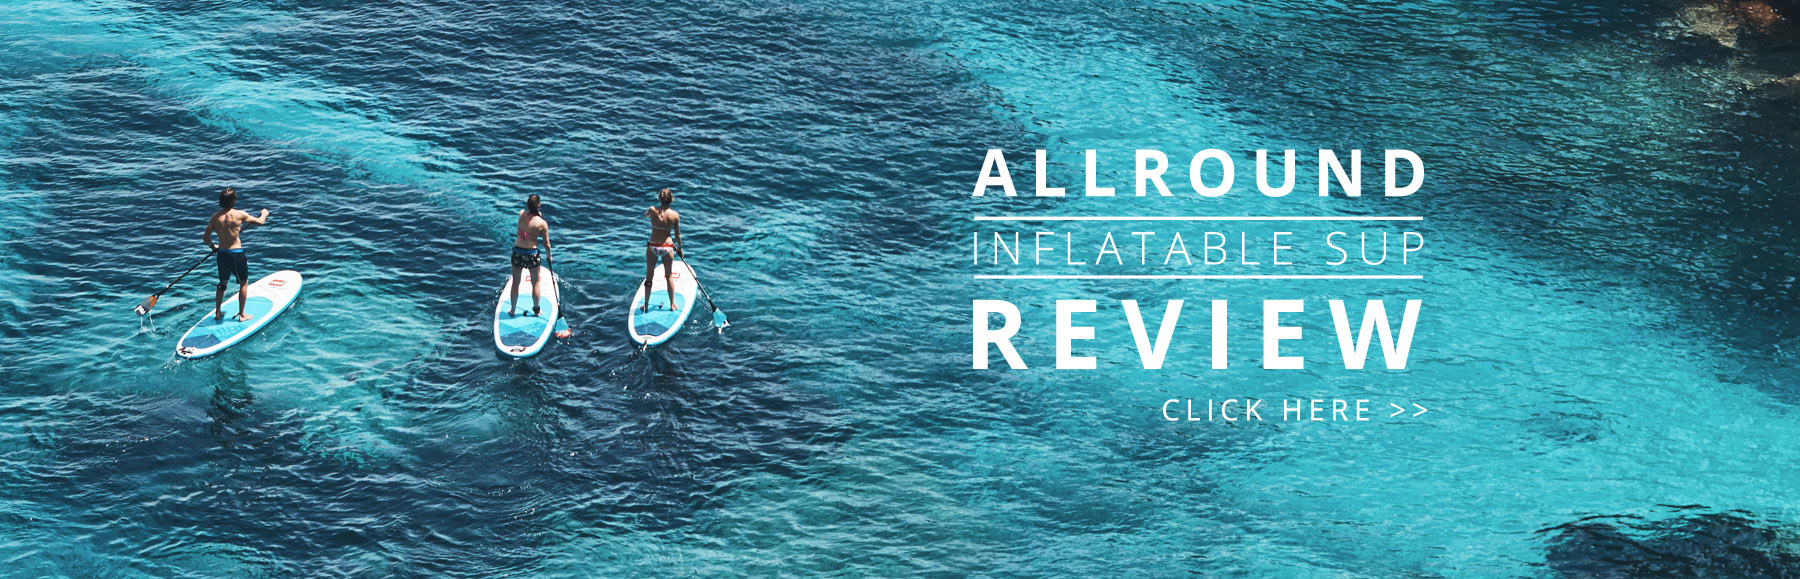 Allround Inflatable SUP Review